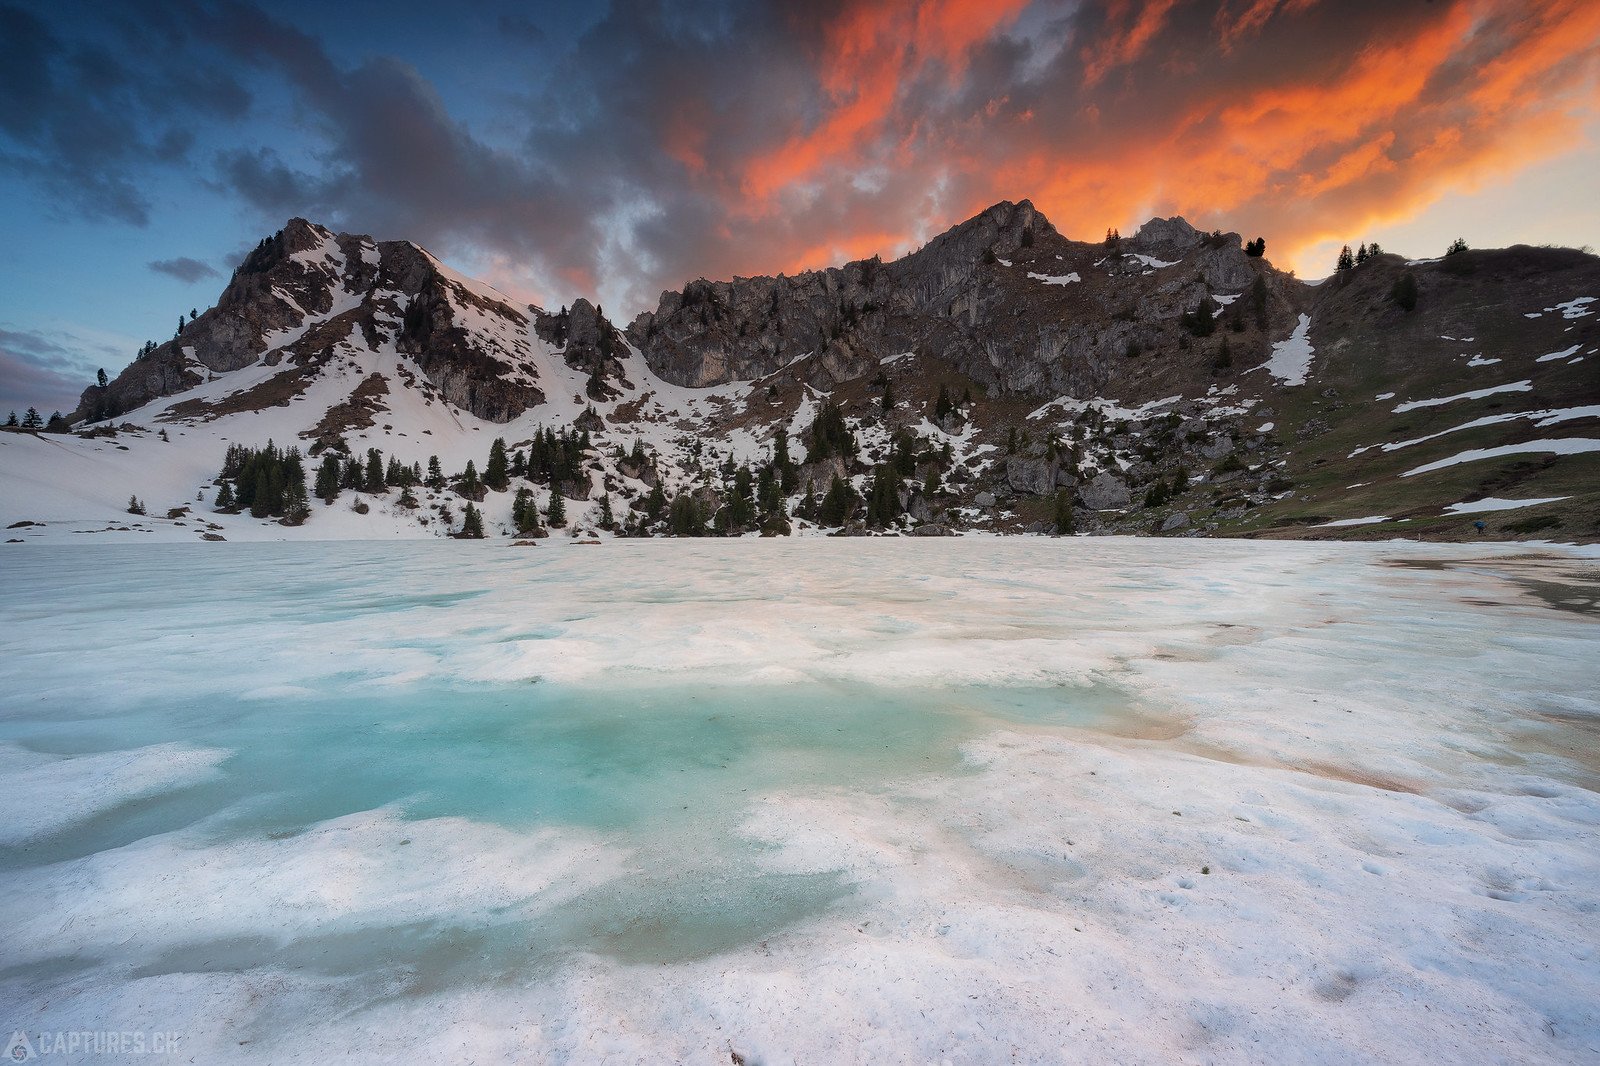 Sunset at the ice lake - Seebergsee